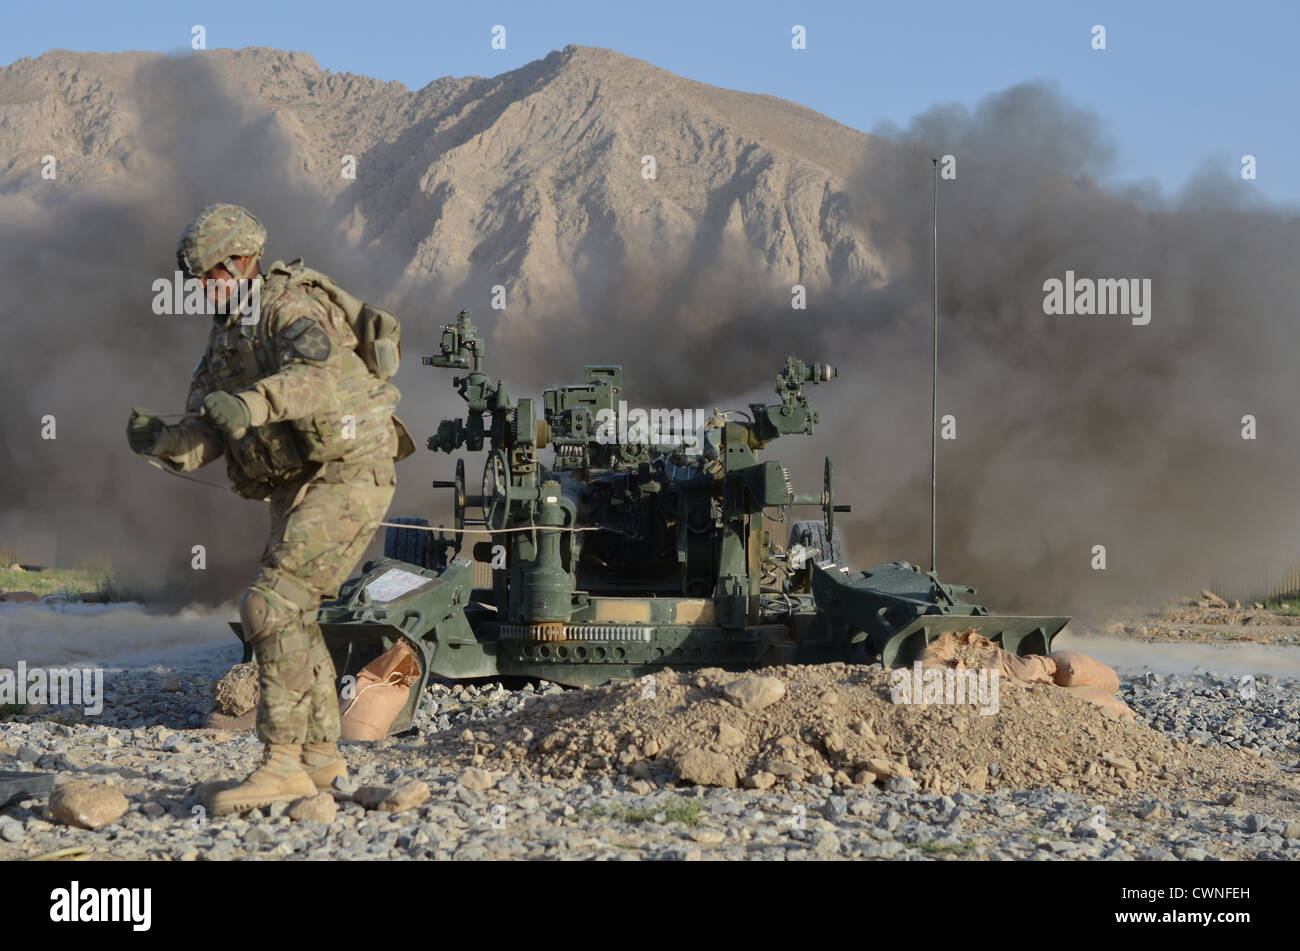 m777 howitzer stock photos m777 howitzer stock images alamy rh alamy com